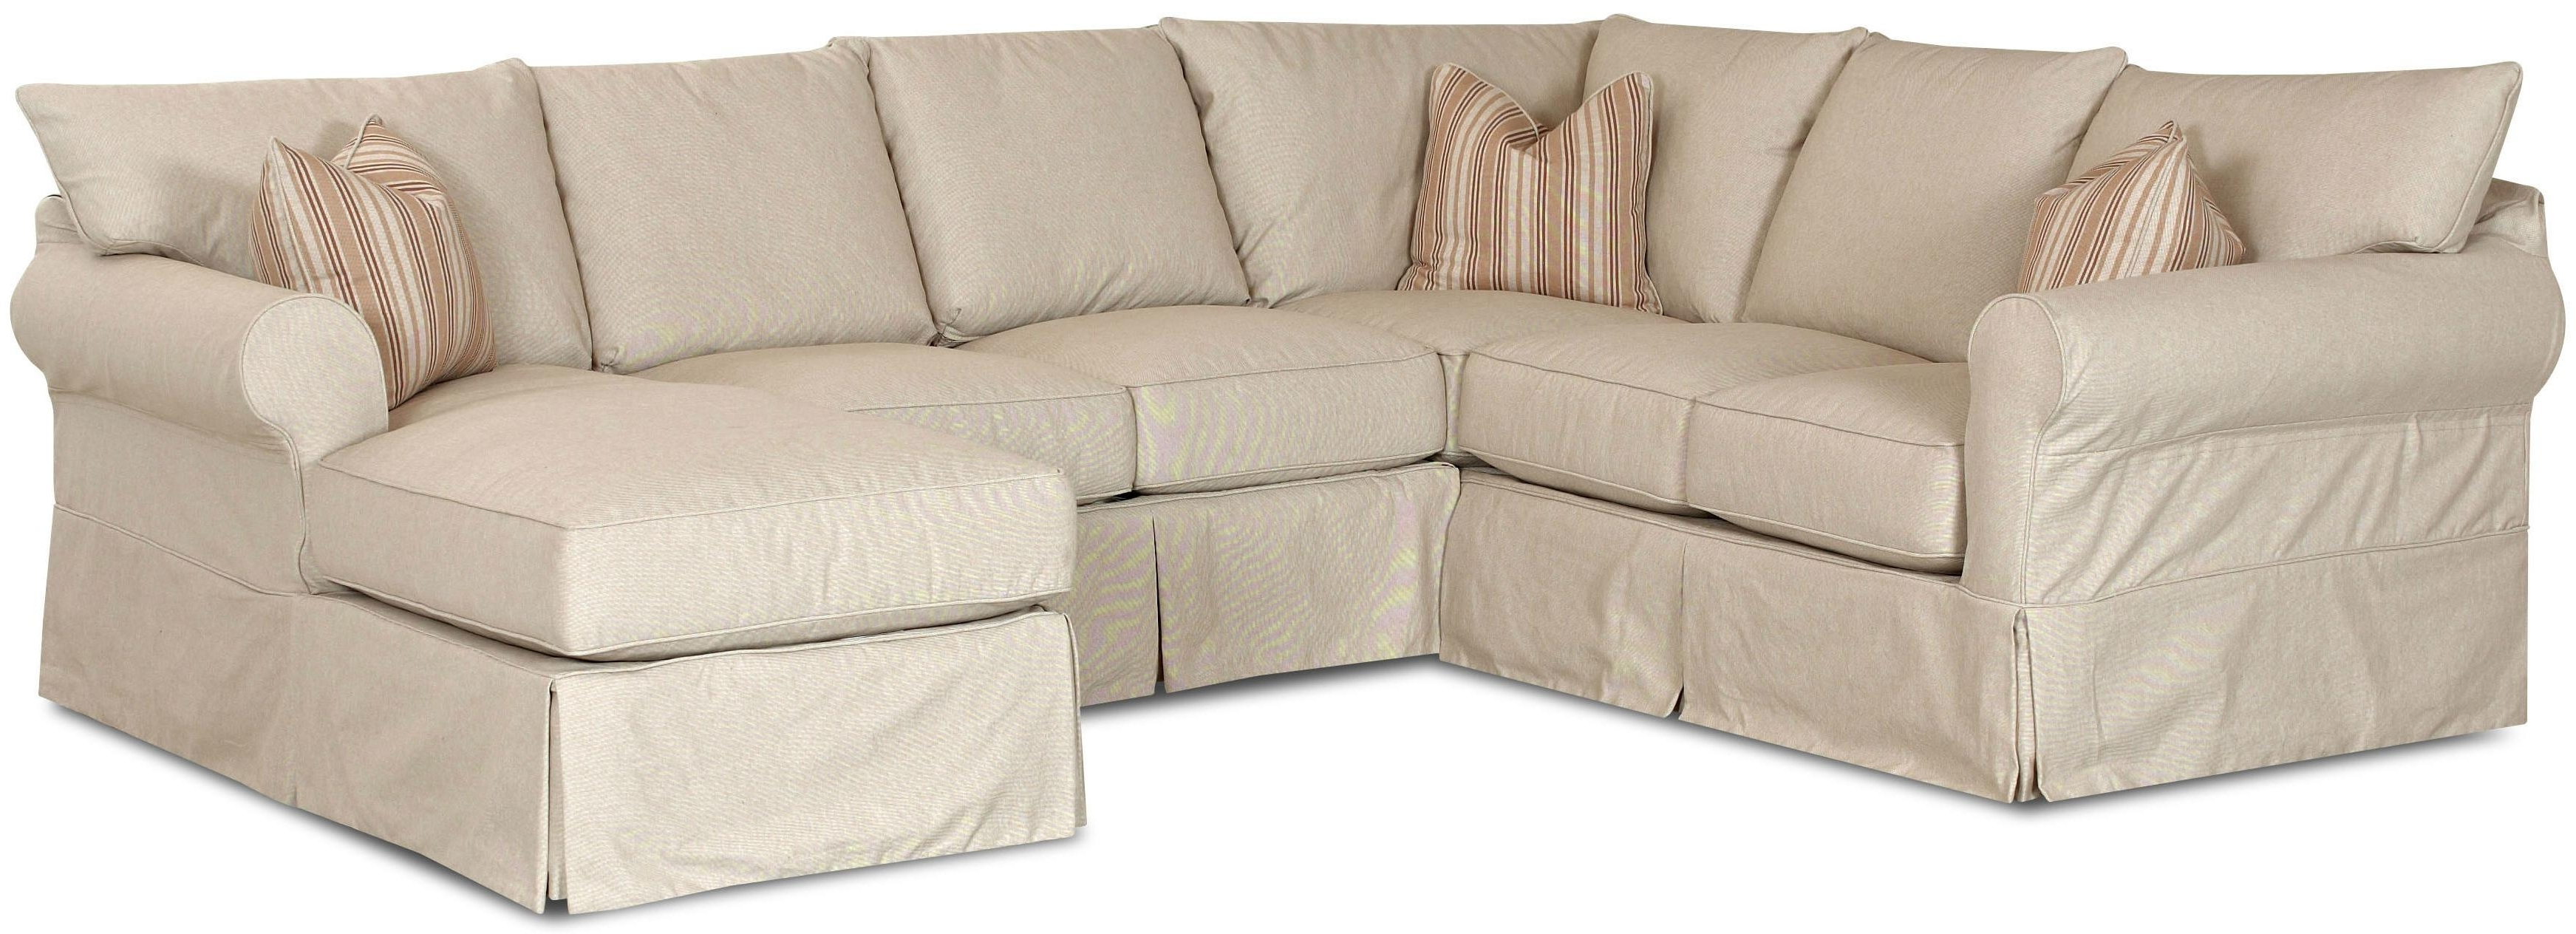 Slipcovers For Sectional Sofa With Chaise Regarding Widely Used Furniture: Creating Perfect Setting For Your Space With Sectional (View 4 of 15)